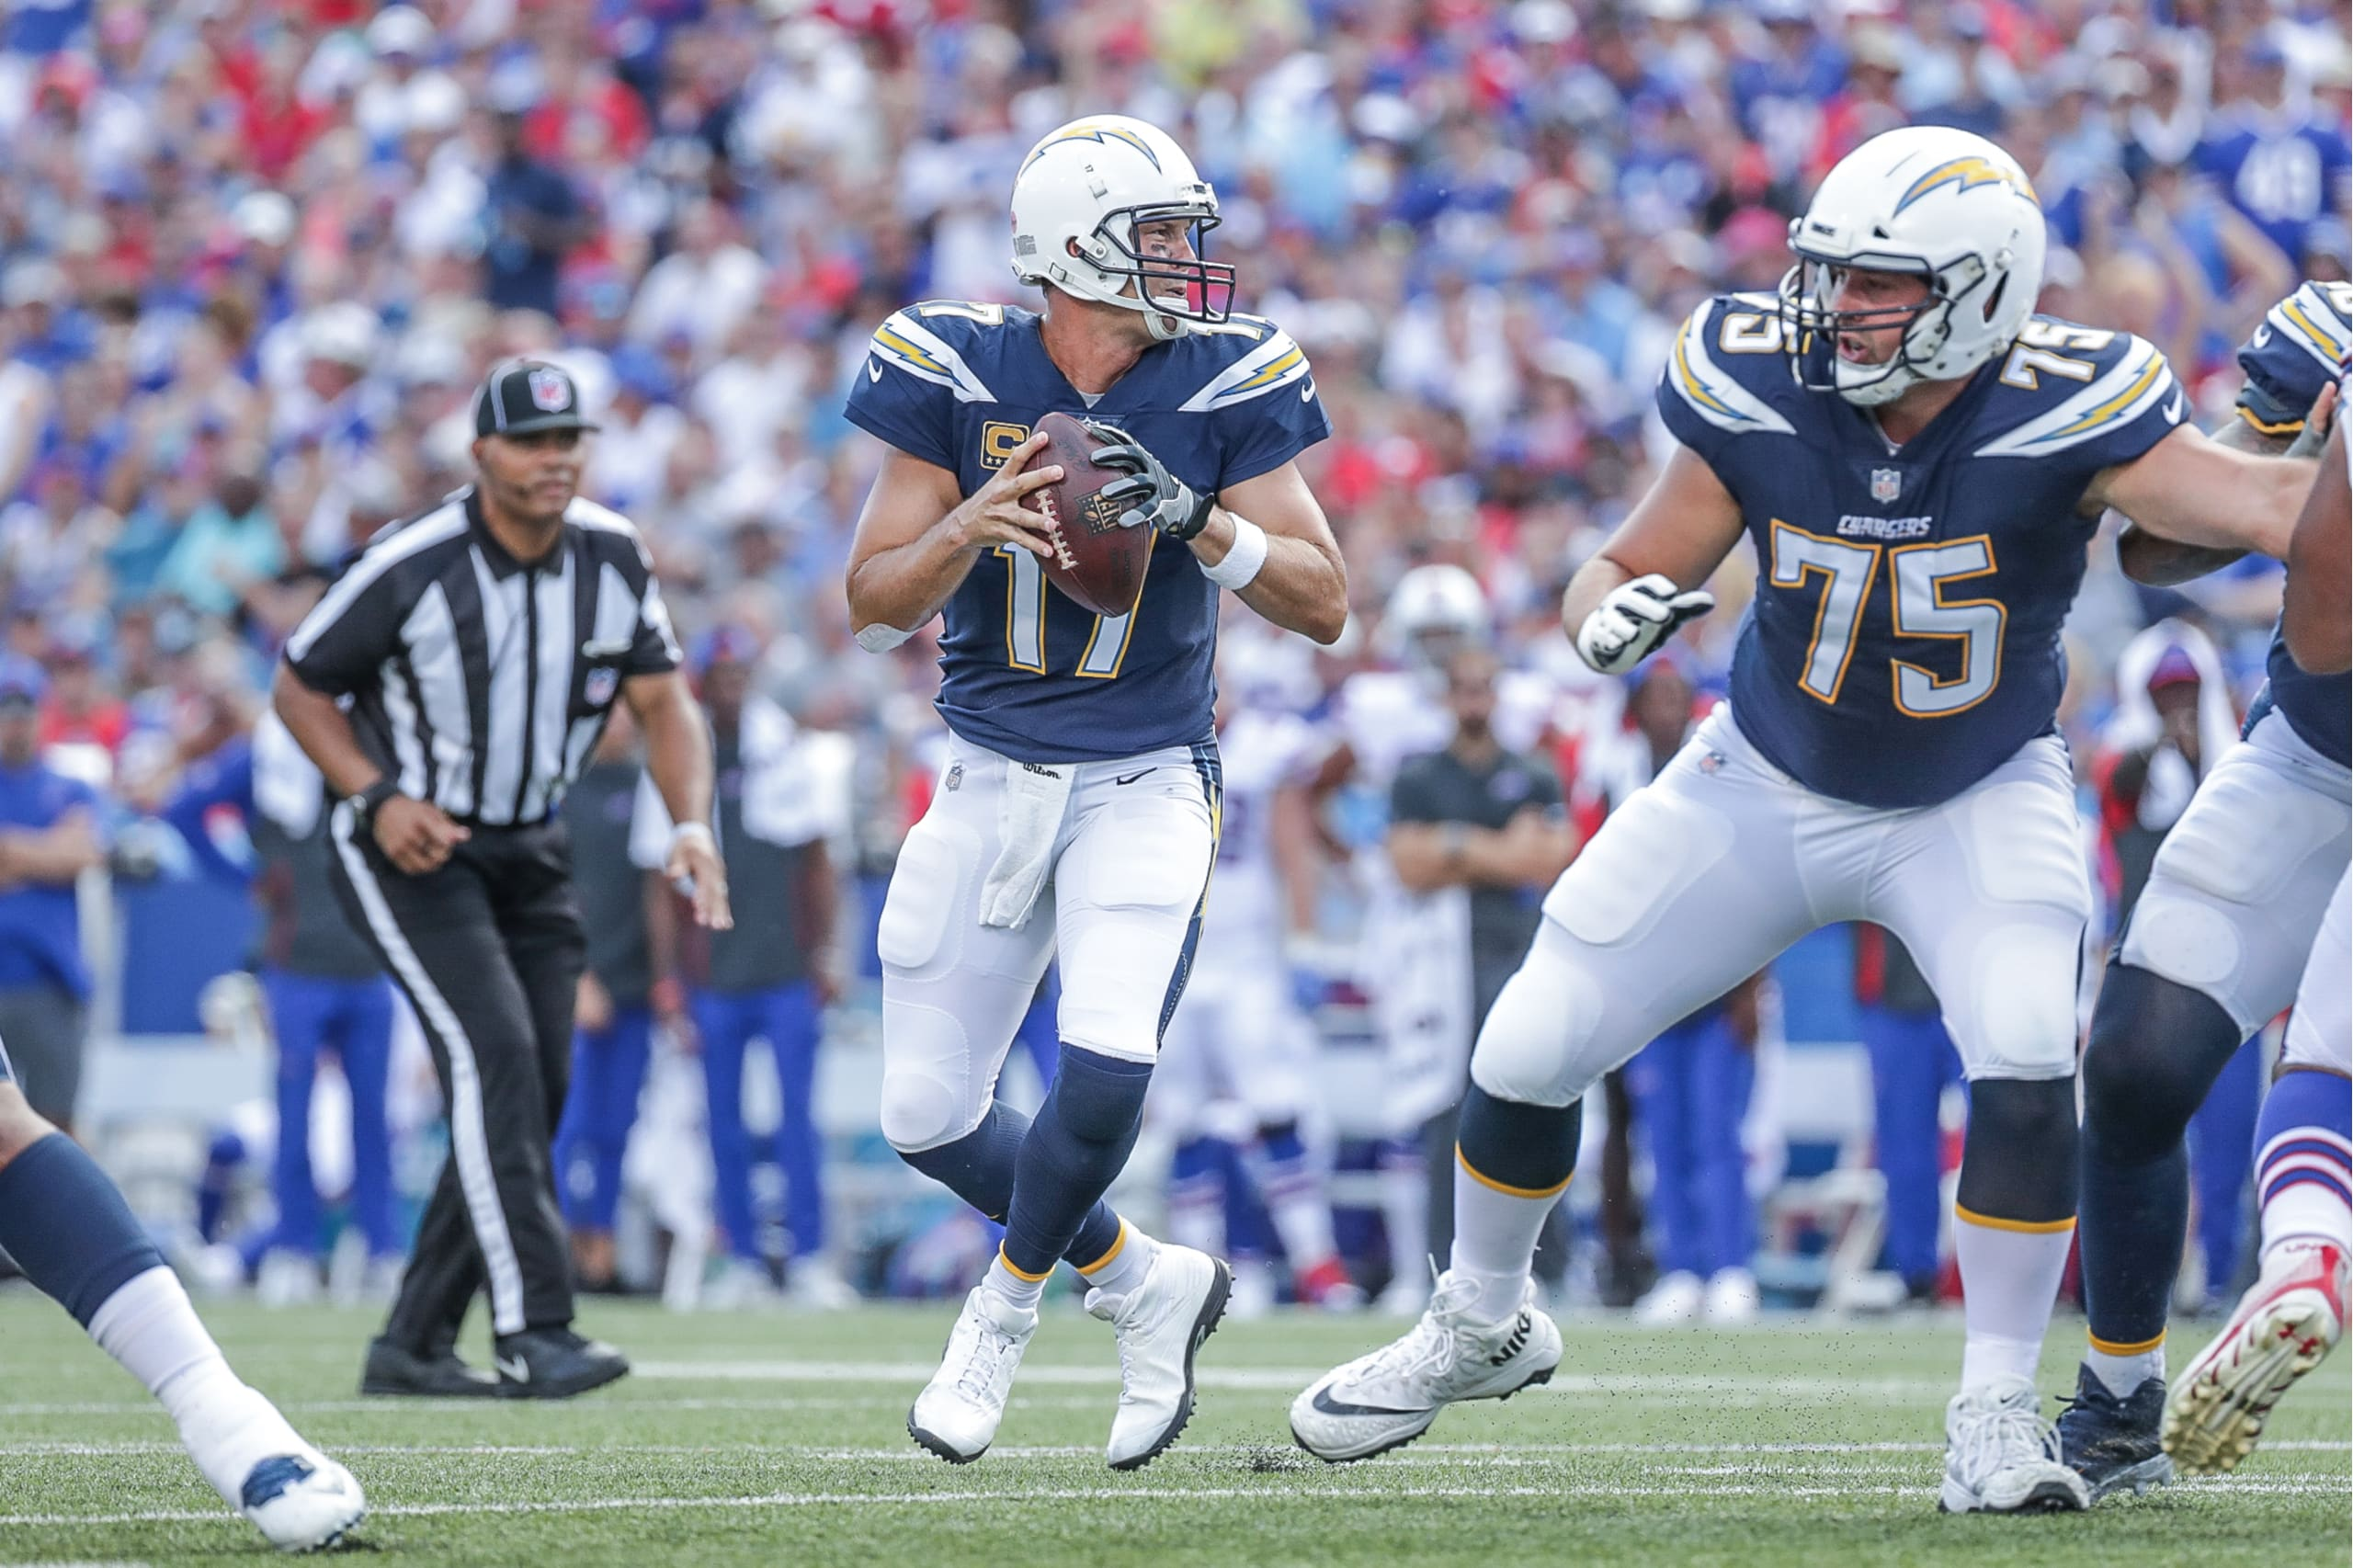 Chargers can't afford another season of early losses